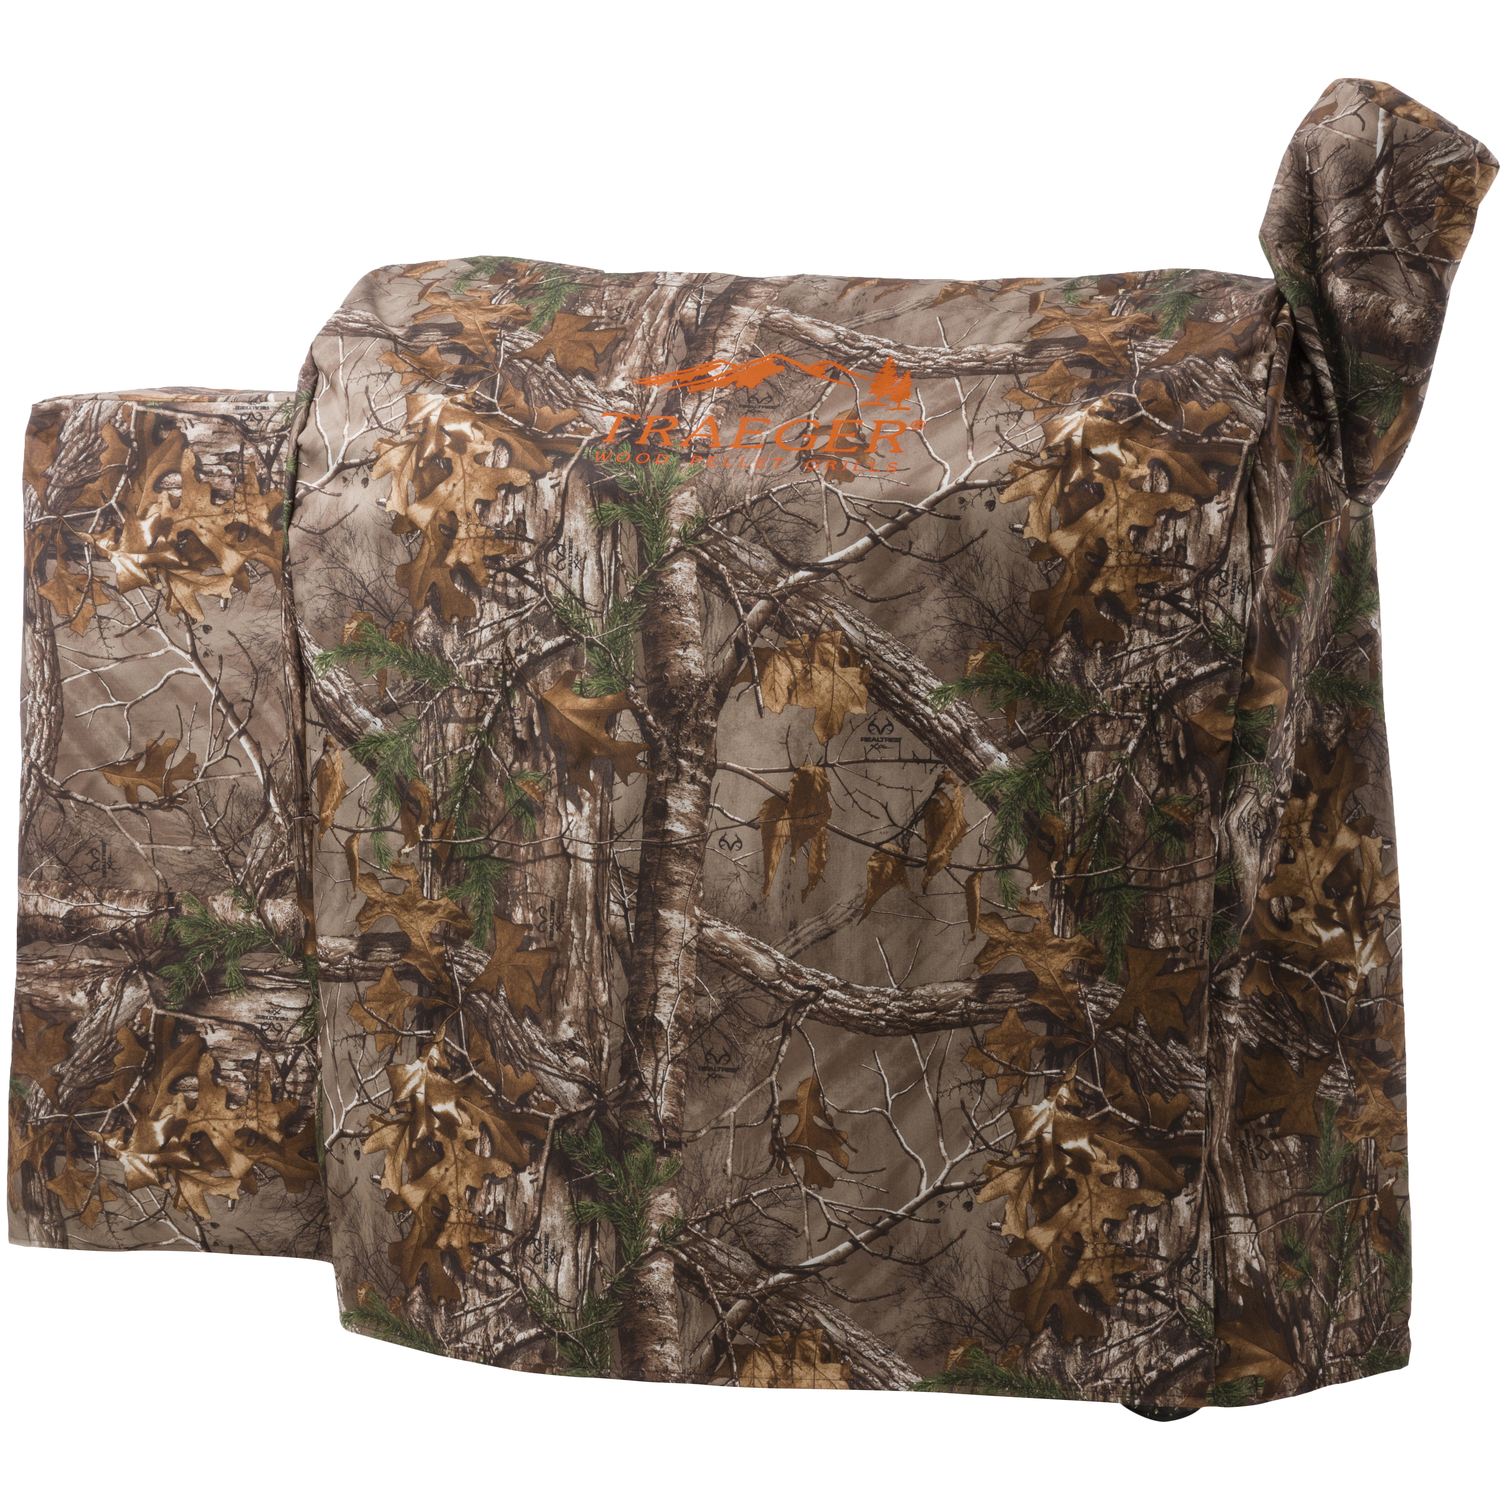 Traeger  Realtree  Brown  Grill Cover  39 in. H x 49 in. D x 22 in. W For 34 Series/Texas Grills